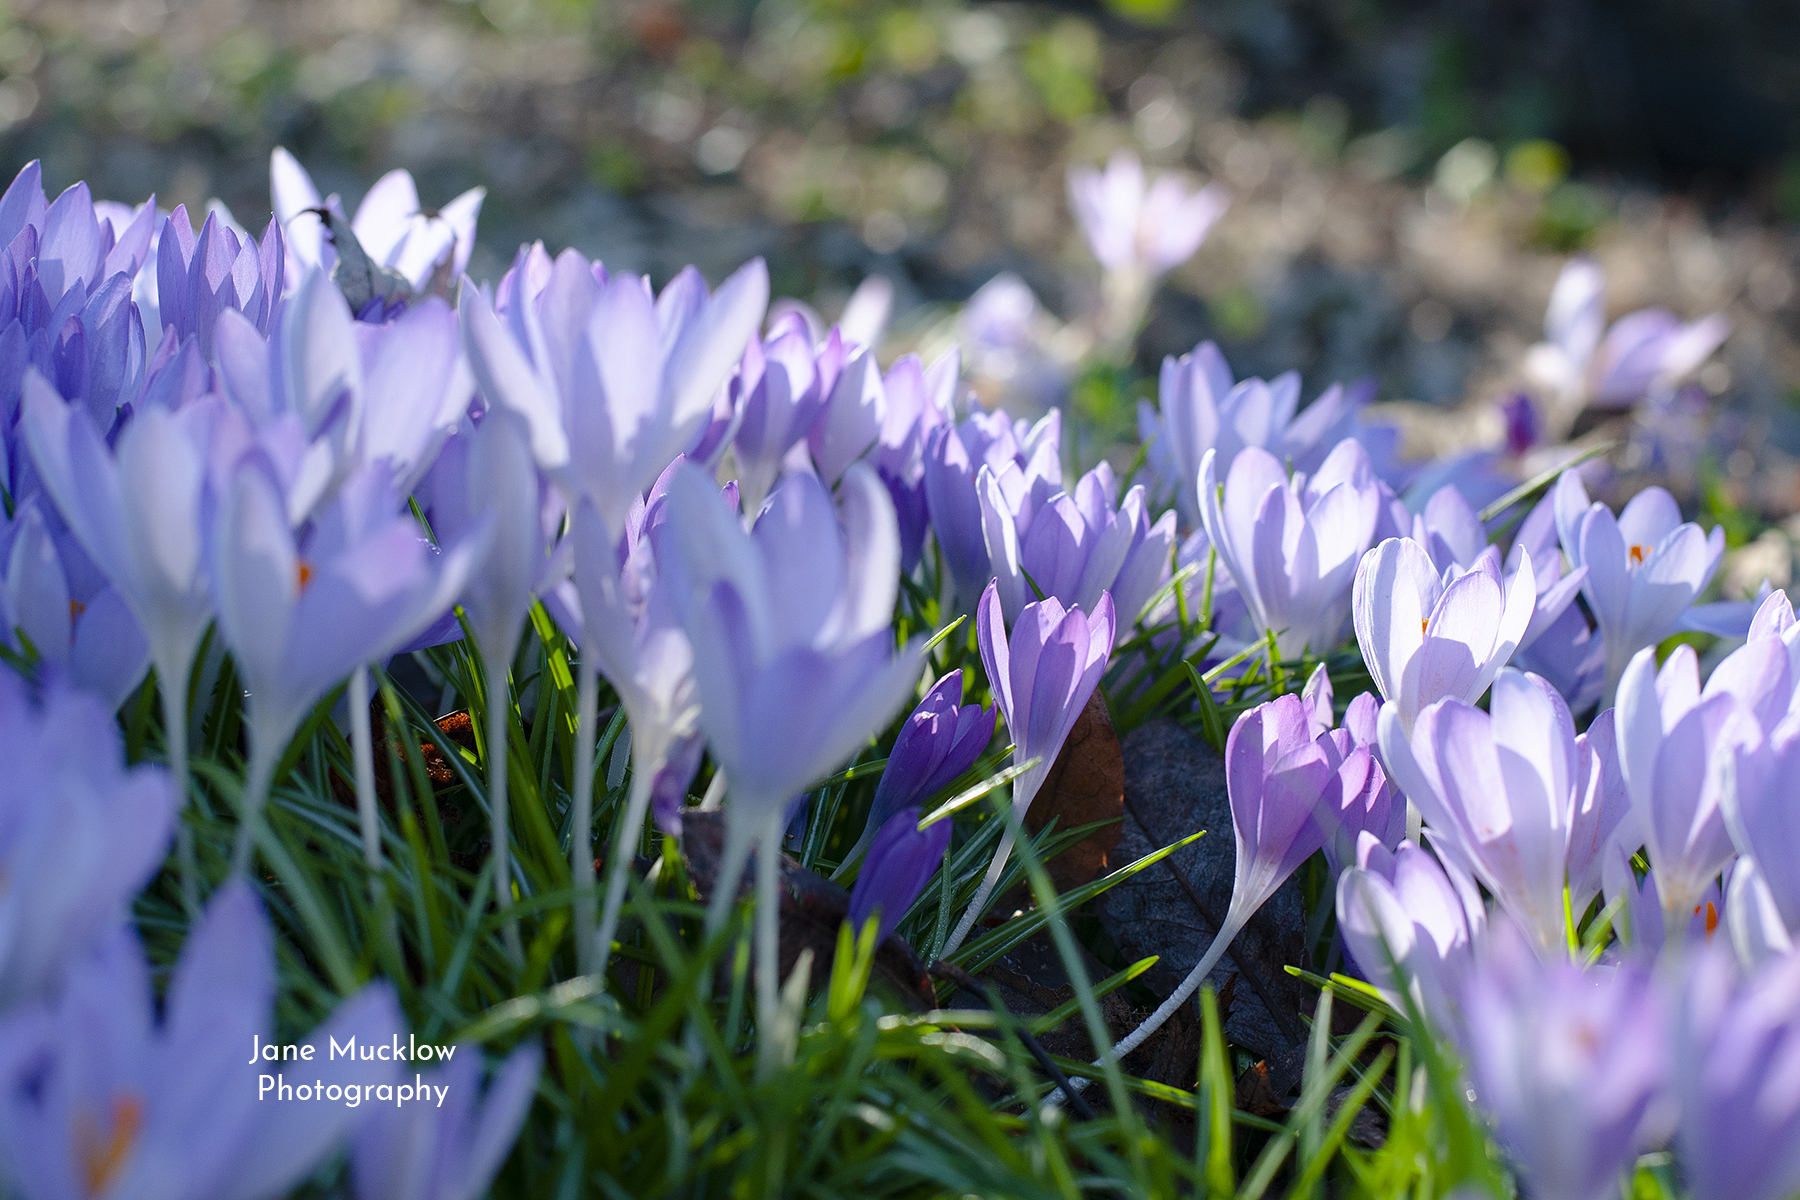 Photo of purple crocus in sunshine, by Jane Mucklow